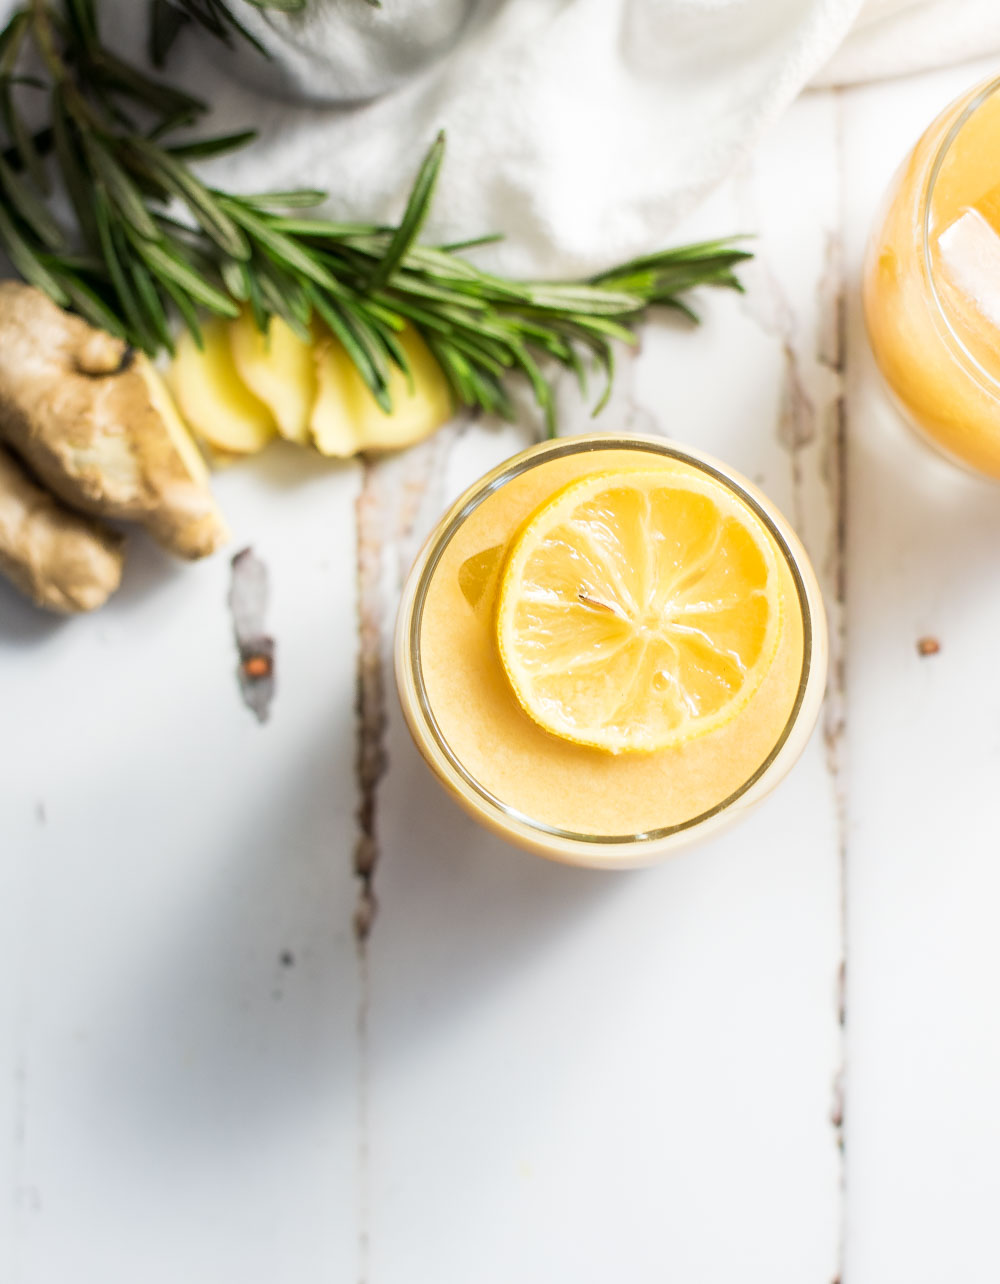 Citrus ginger beer cocktail with candied lemon slices is the perfect drink using 7UP®, fresh ginger, and freshly squeezed orange juice! It is kicked up a notch with both bourbon and pale ale beer creating a flavor explosion!